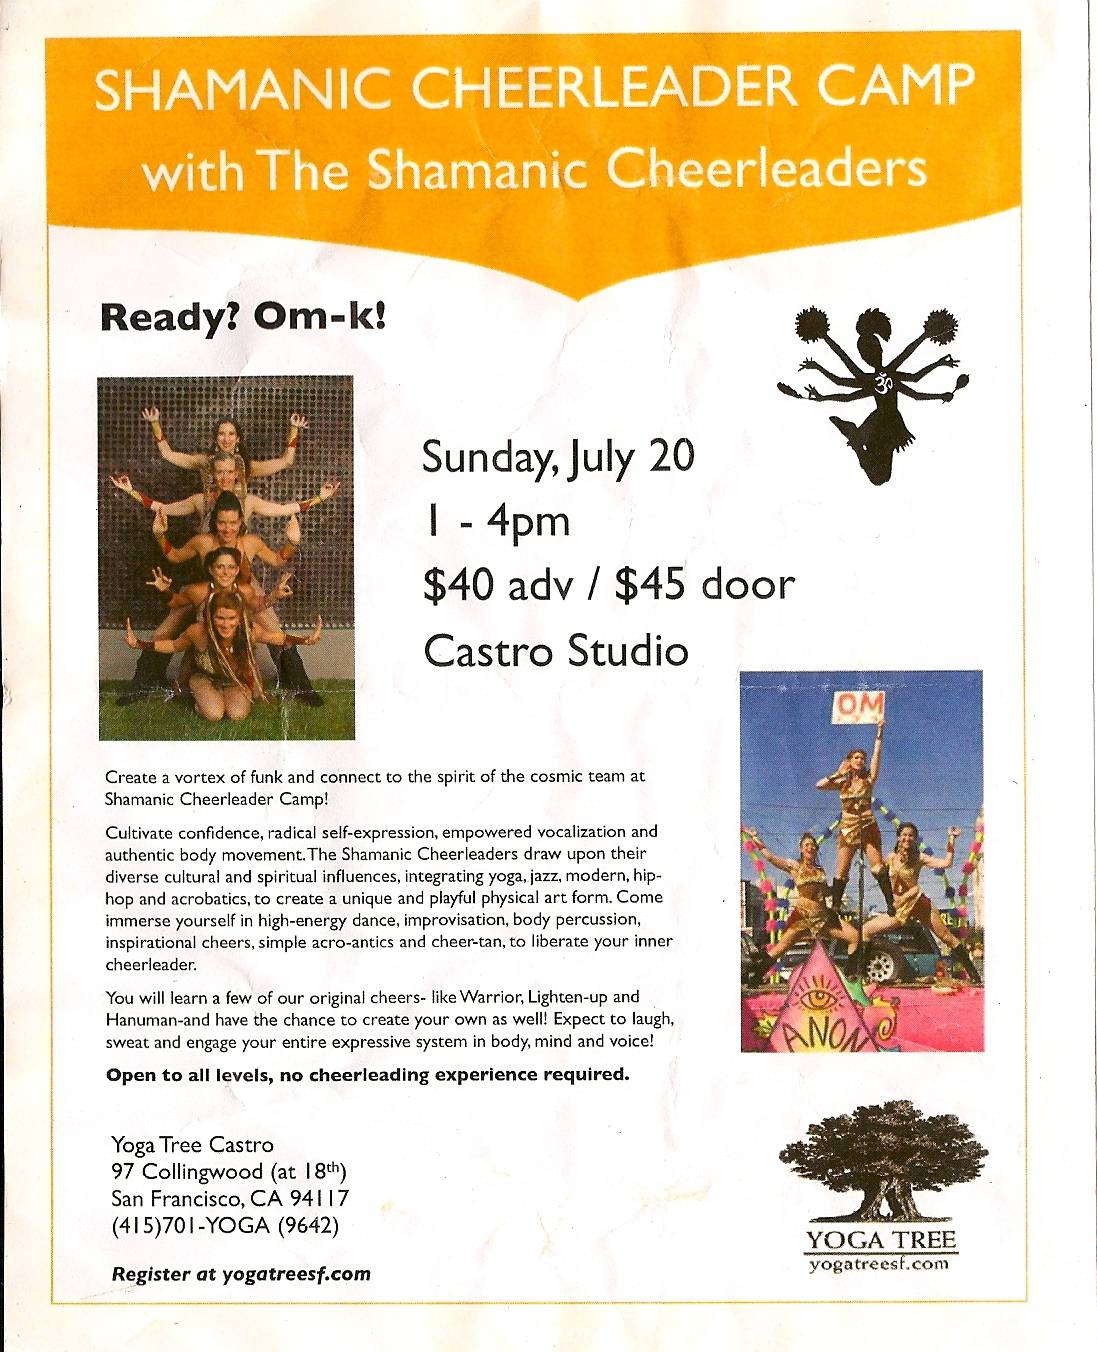 Shamanic Cheerleader Camp flyer